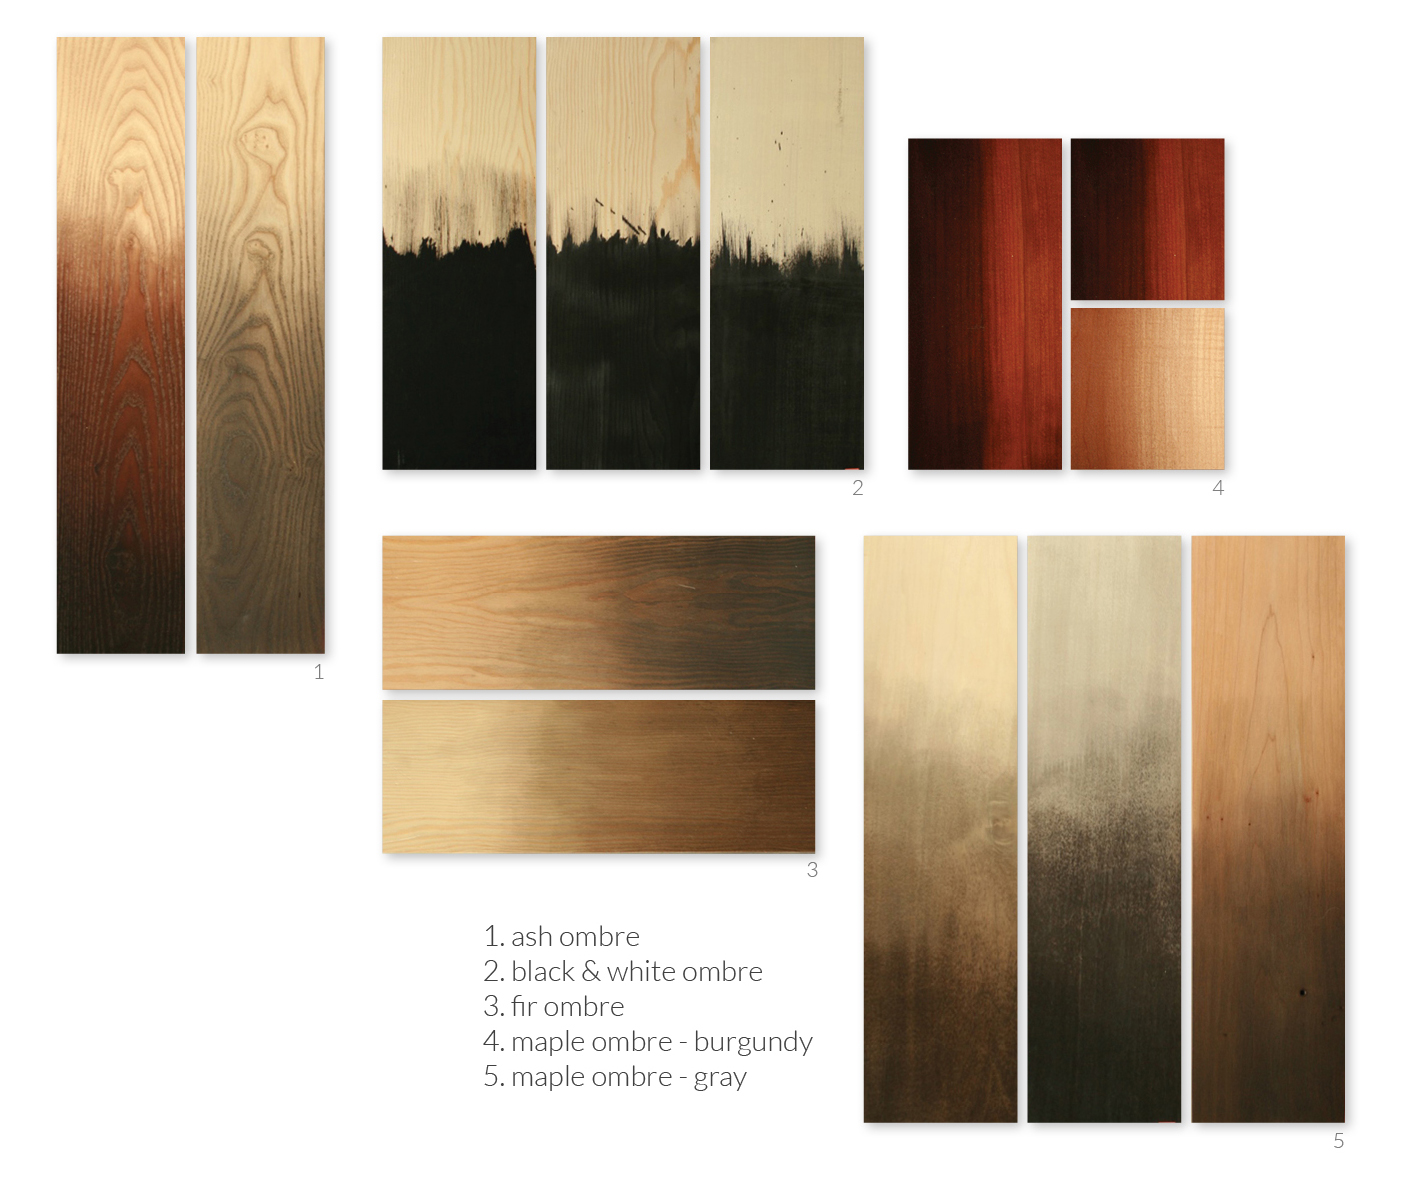 Our newest line of finishes inspired by shades of emotion. The slow fade from sight to night as the sun falls behind the Olympics. The brilliant wash of warmth when the clouds break for a few passing minutes. From delicate fades to bold shifts, our ombré finishes capture those waves of energy in washes of color.